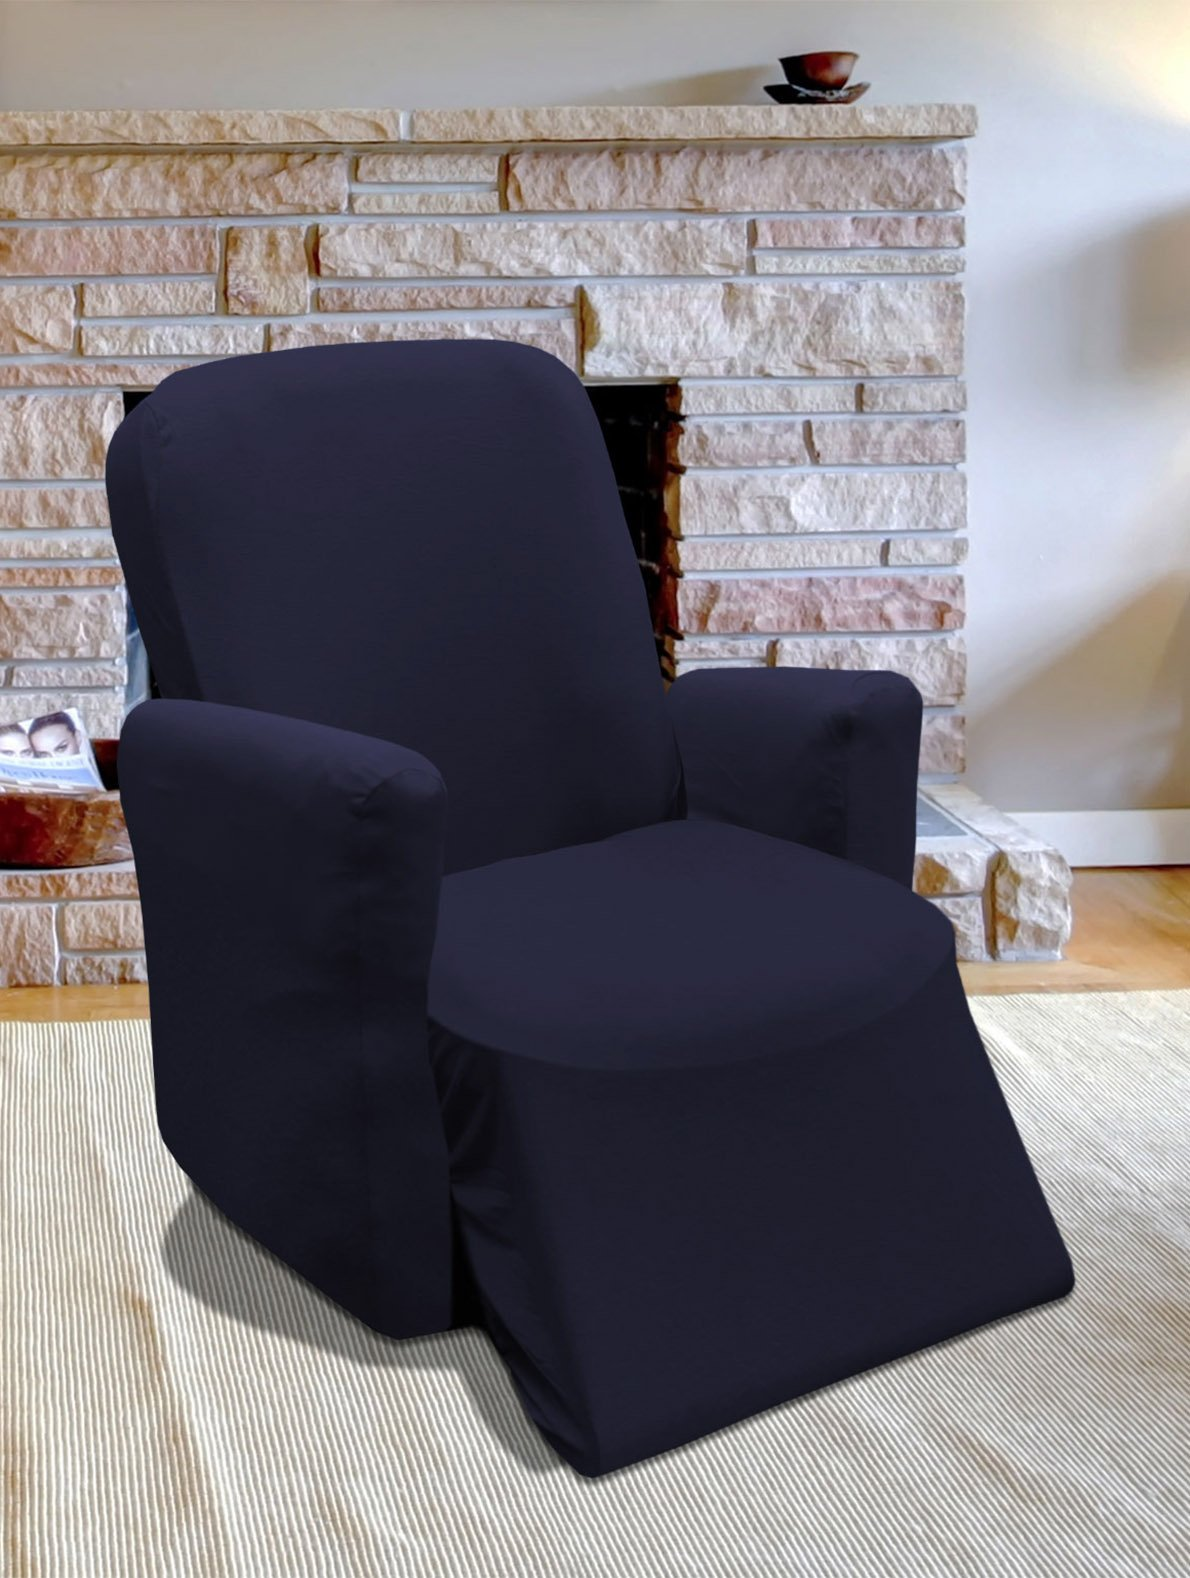 Linen Store Stretch Jersey Slipcover, Soft Form Fitting, Solid Color (Recliner, Navy) by Linen Store